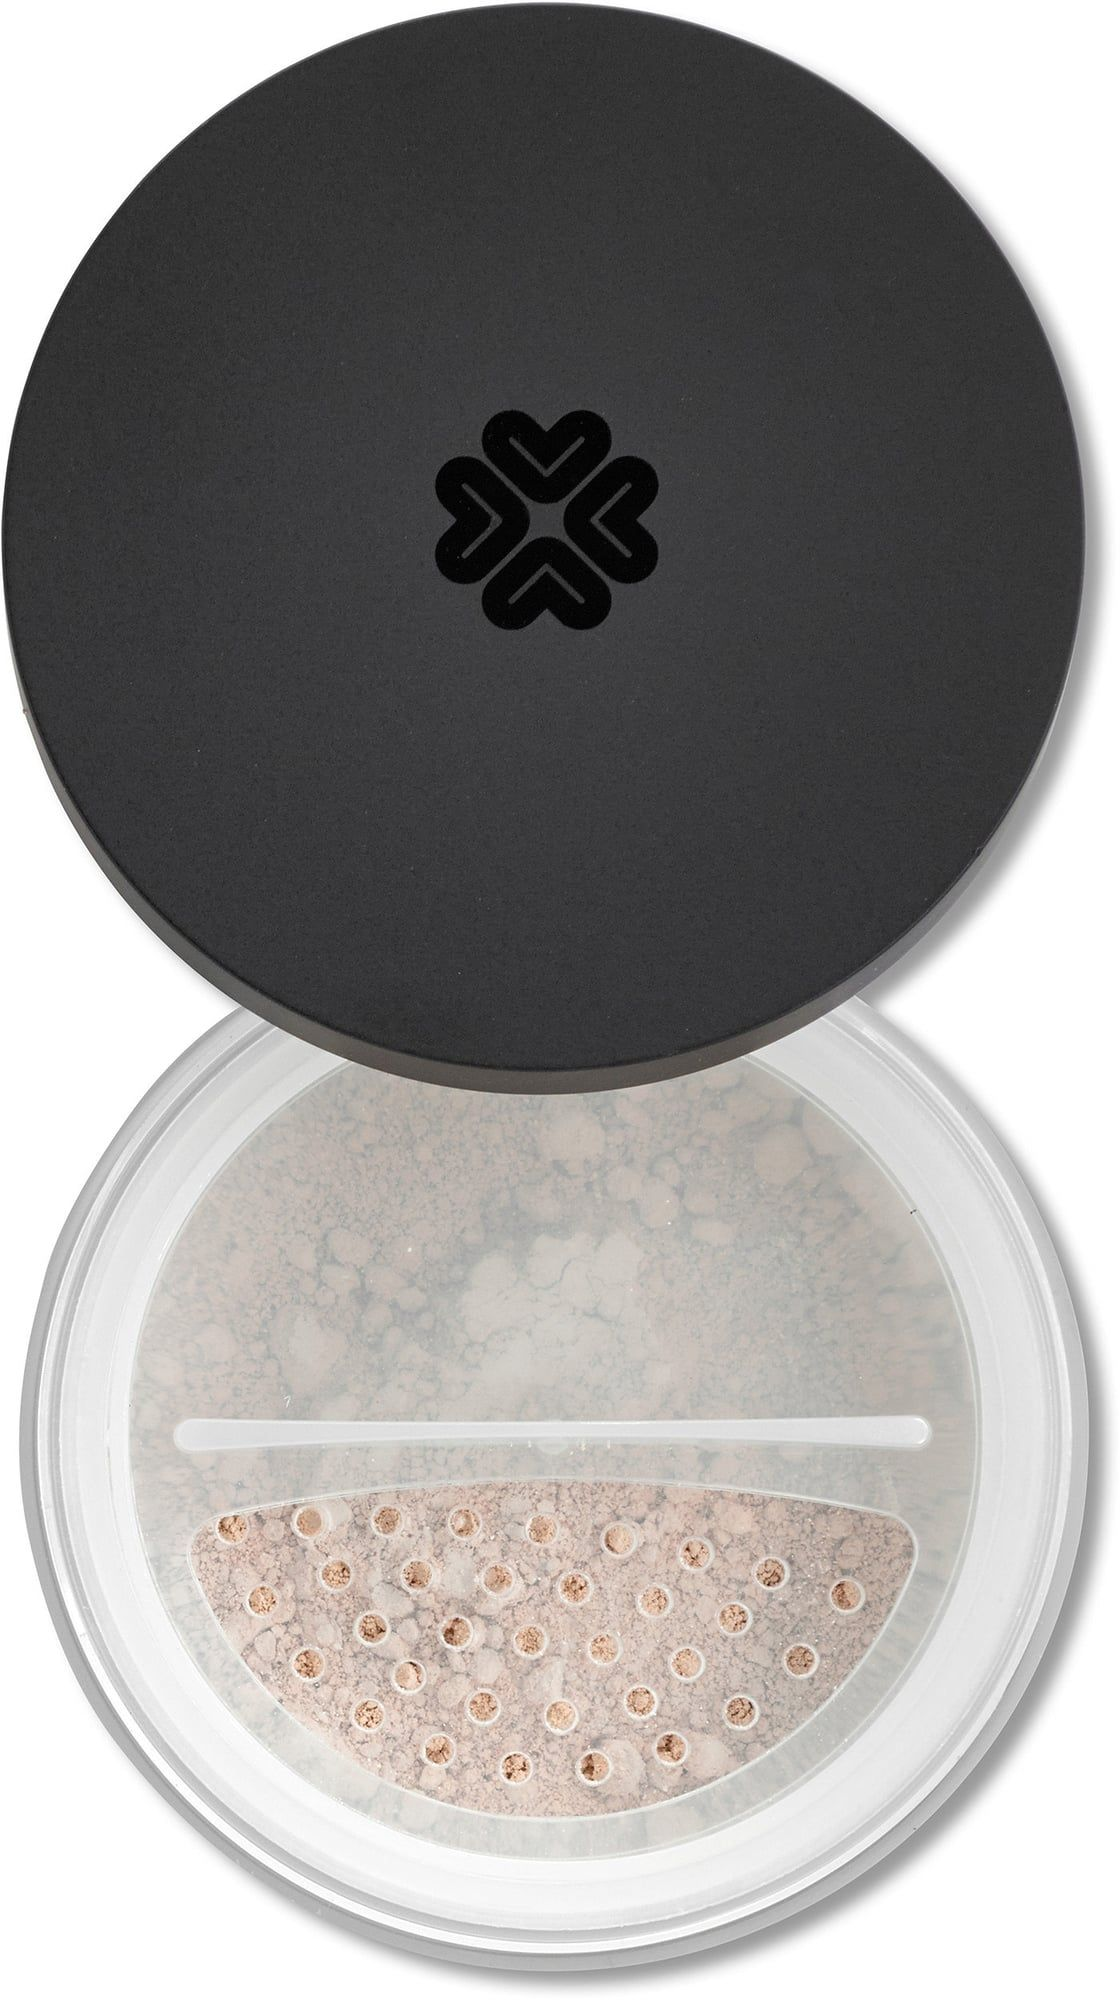 Lily Lolo Mineral Foundation SK 15